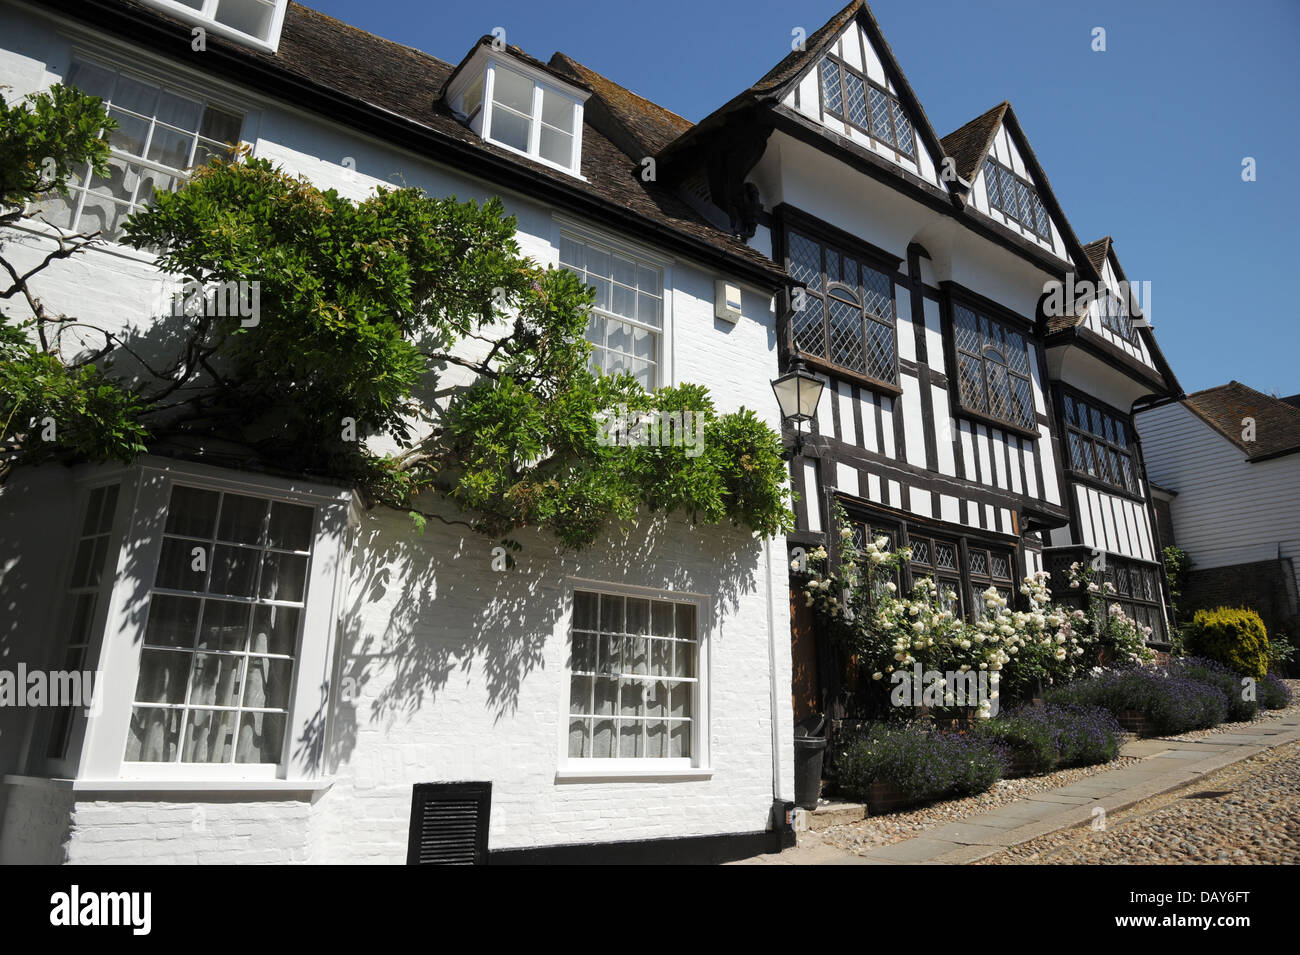 The stunning architecture and beauty of old England. - Stock Image